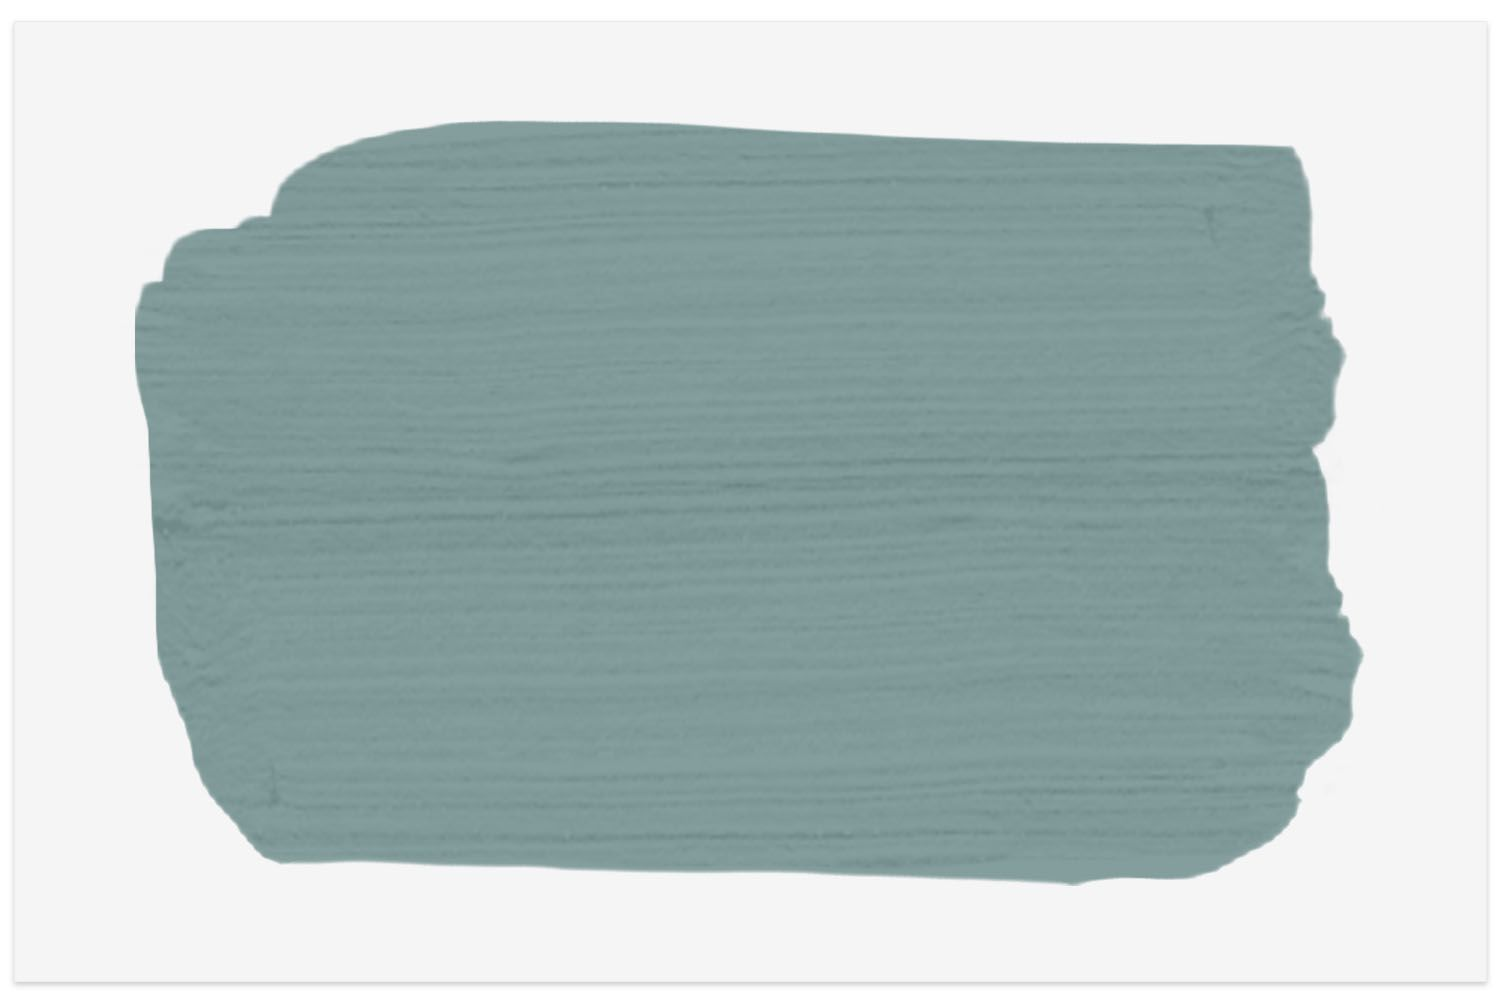 Spruce Paint swatch color in Antique Teal